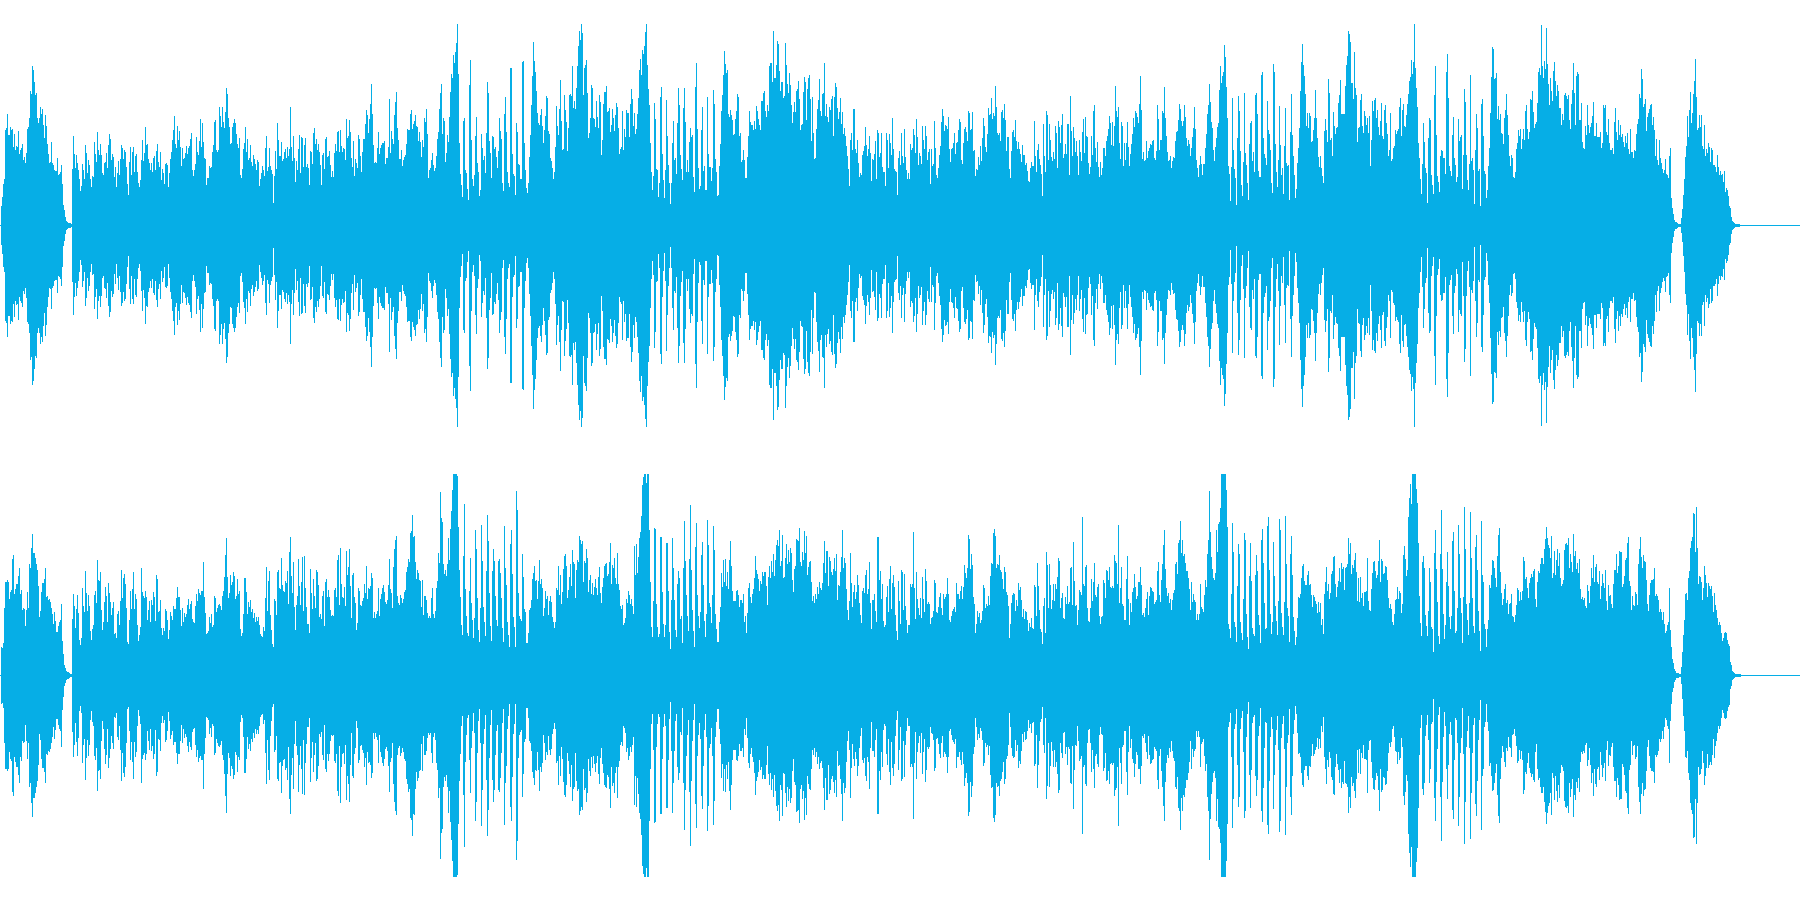 Orchestra Image of a fashionable city's reproduced waveform